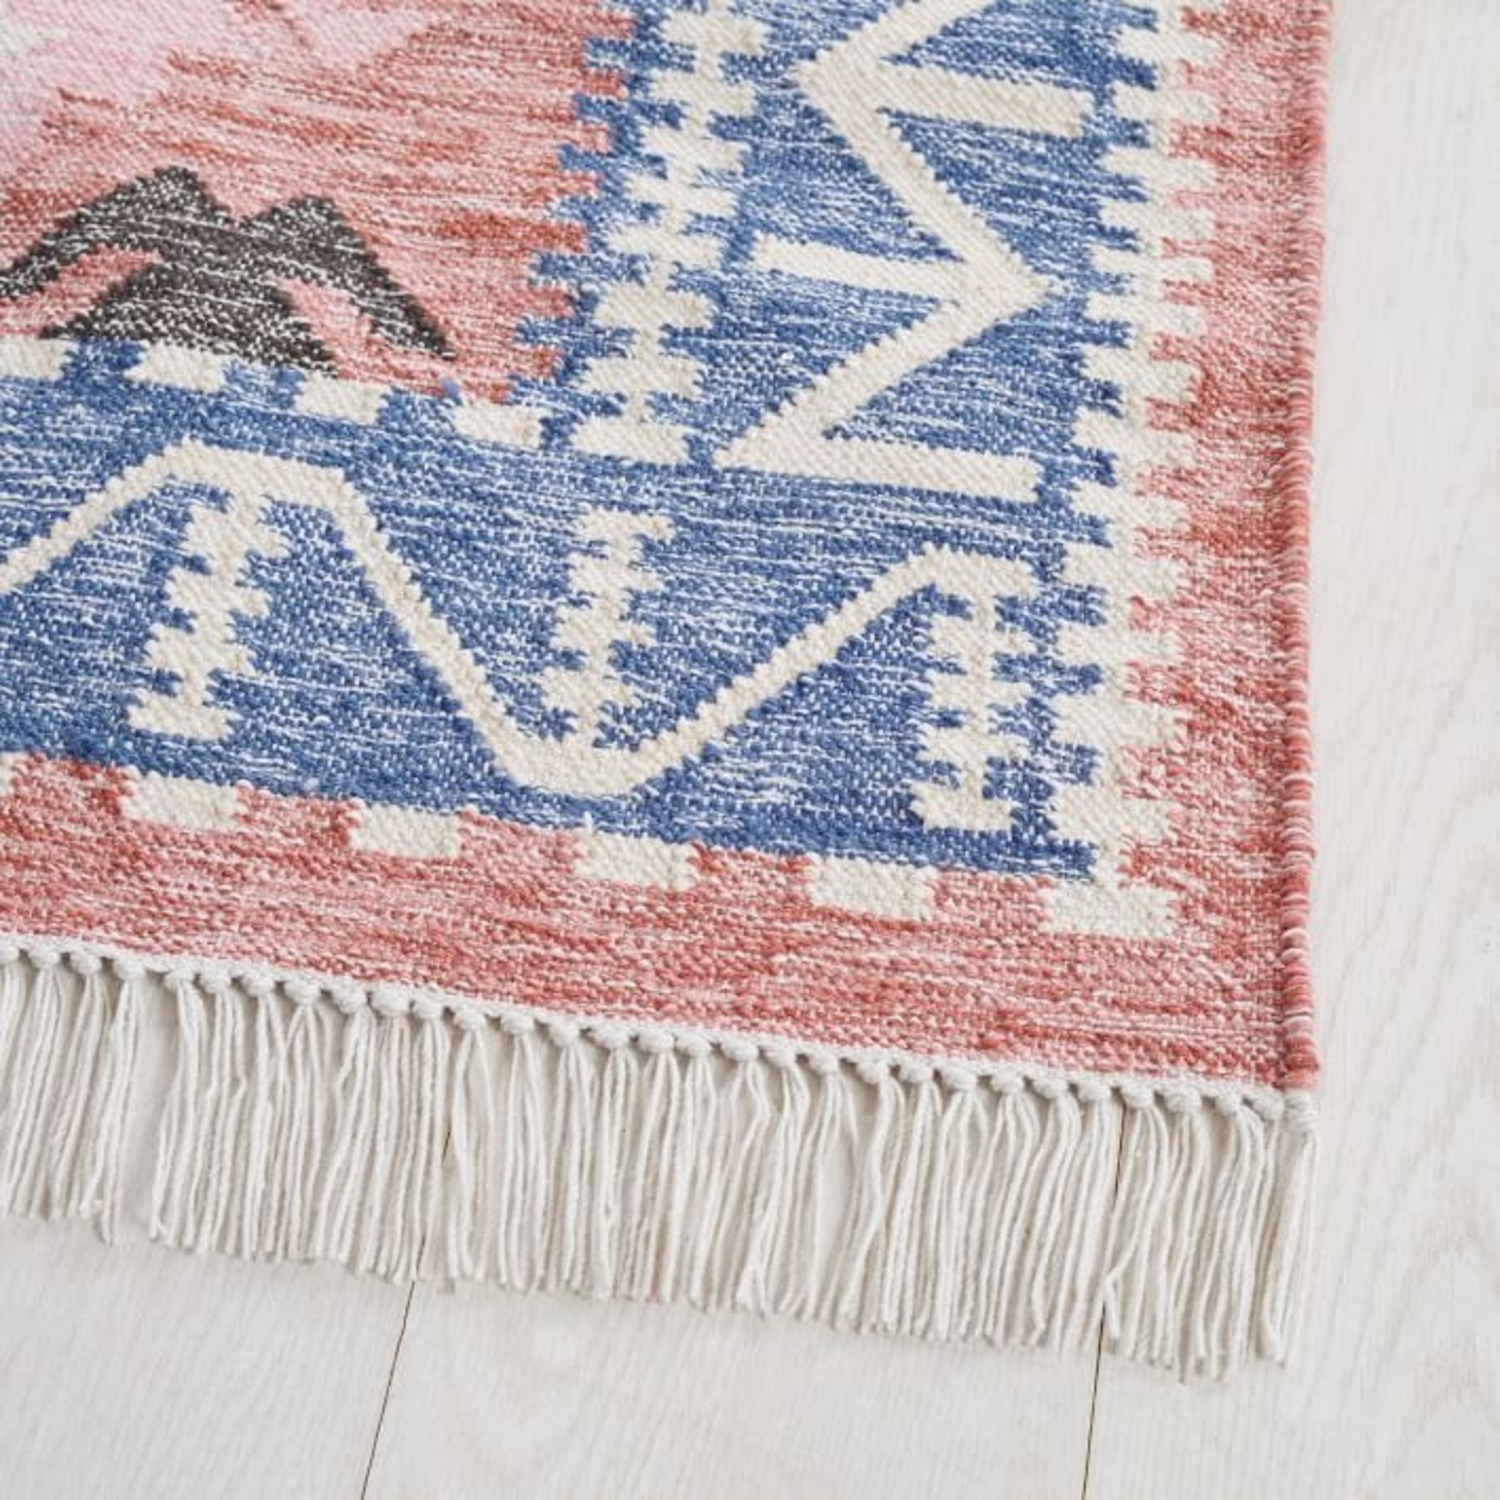 West Elm Framed Arrows Indoor/Outdoor Rug - image-2